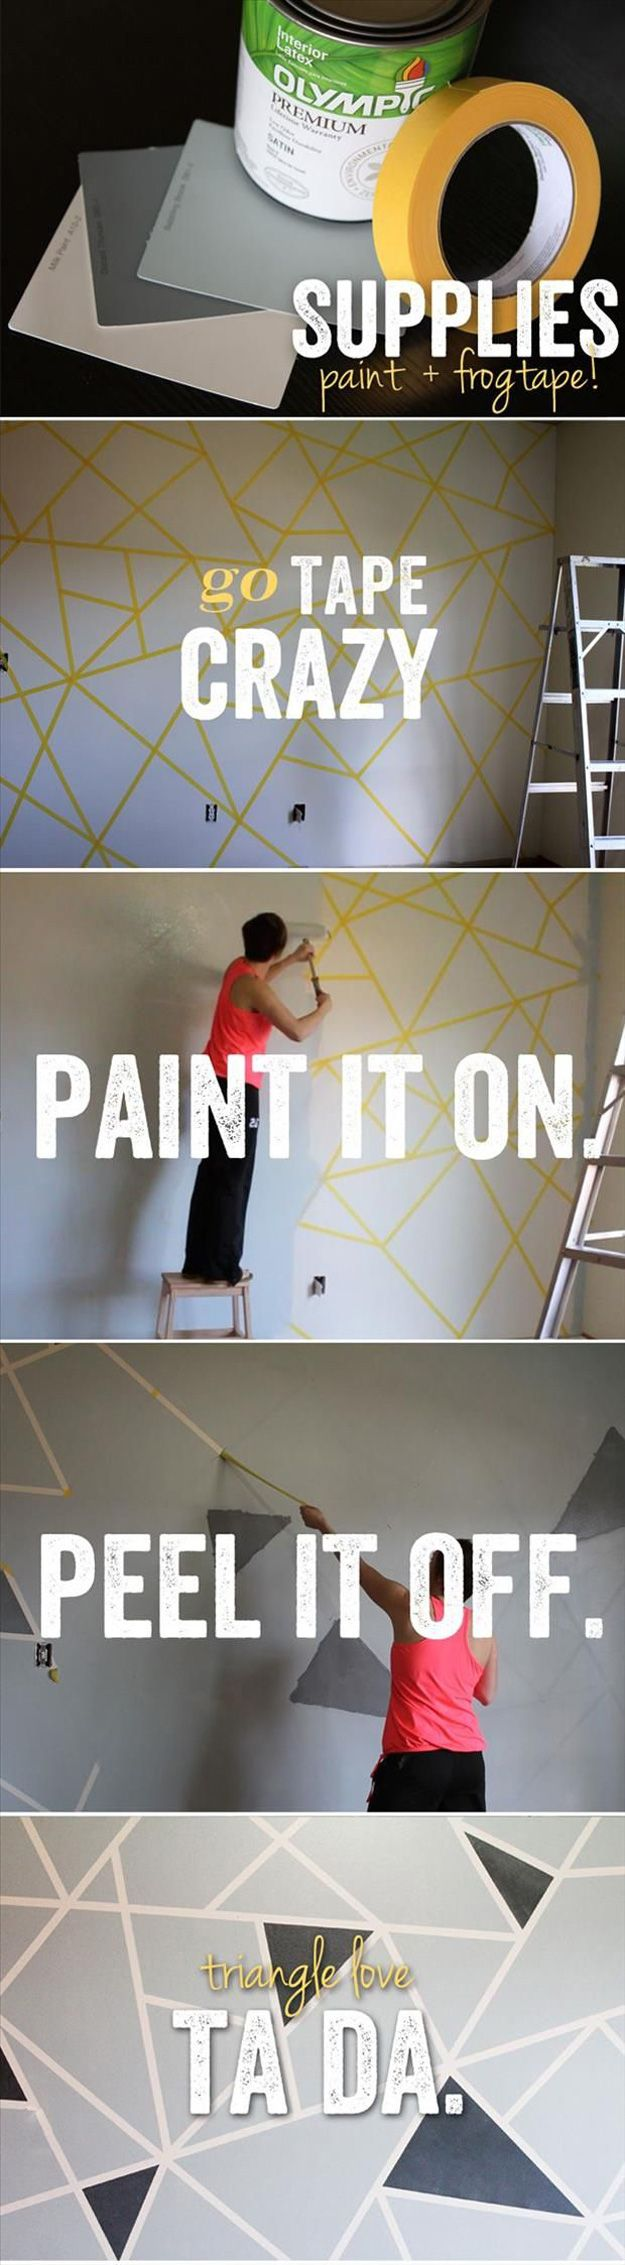 20 Cool Home Decor Wall Art Ideas For You To Craft DIYReady.com | Easy